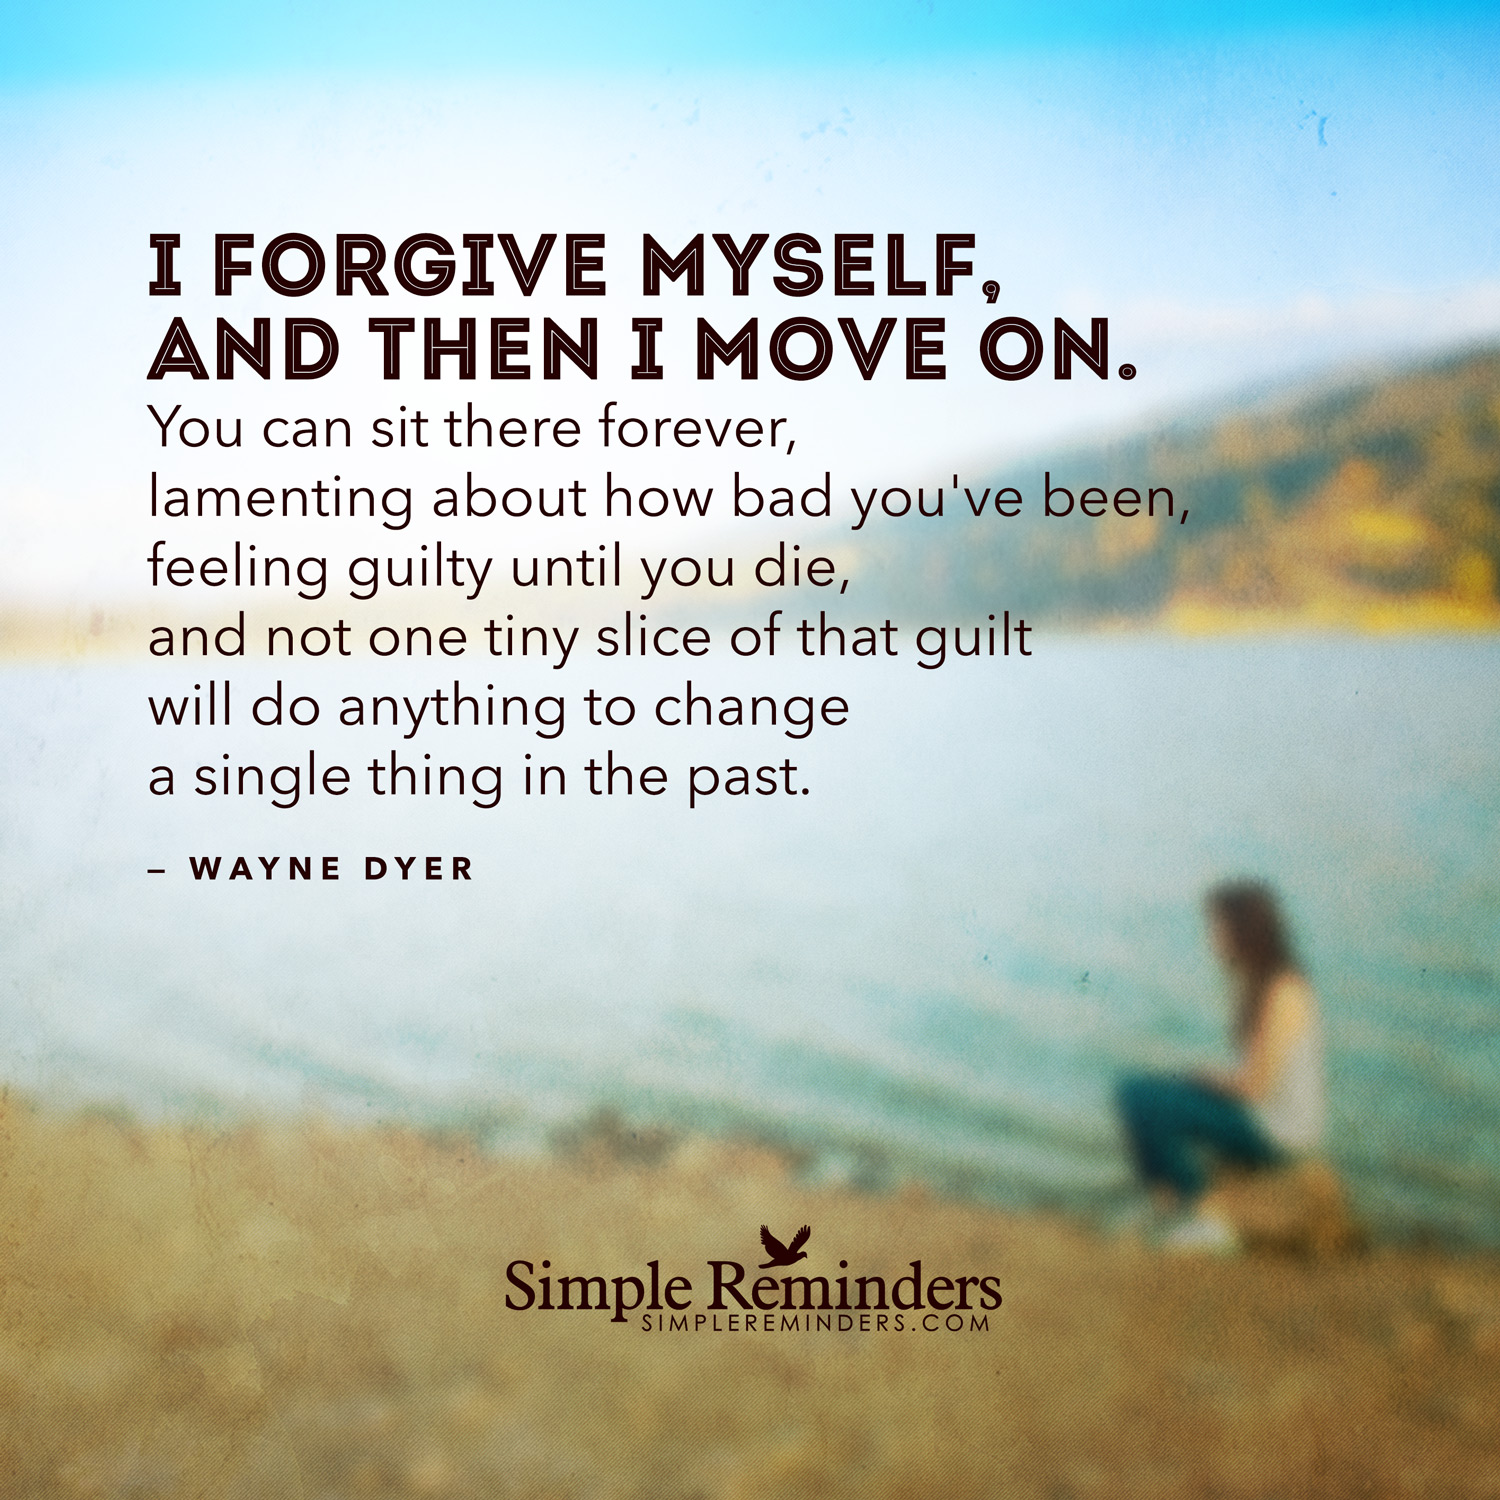 Quotes On Forgiveness And Moving On. QuotesGram